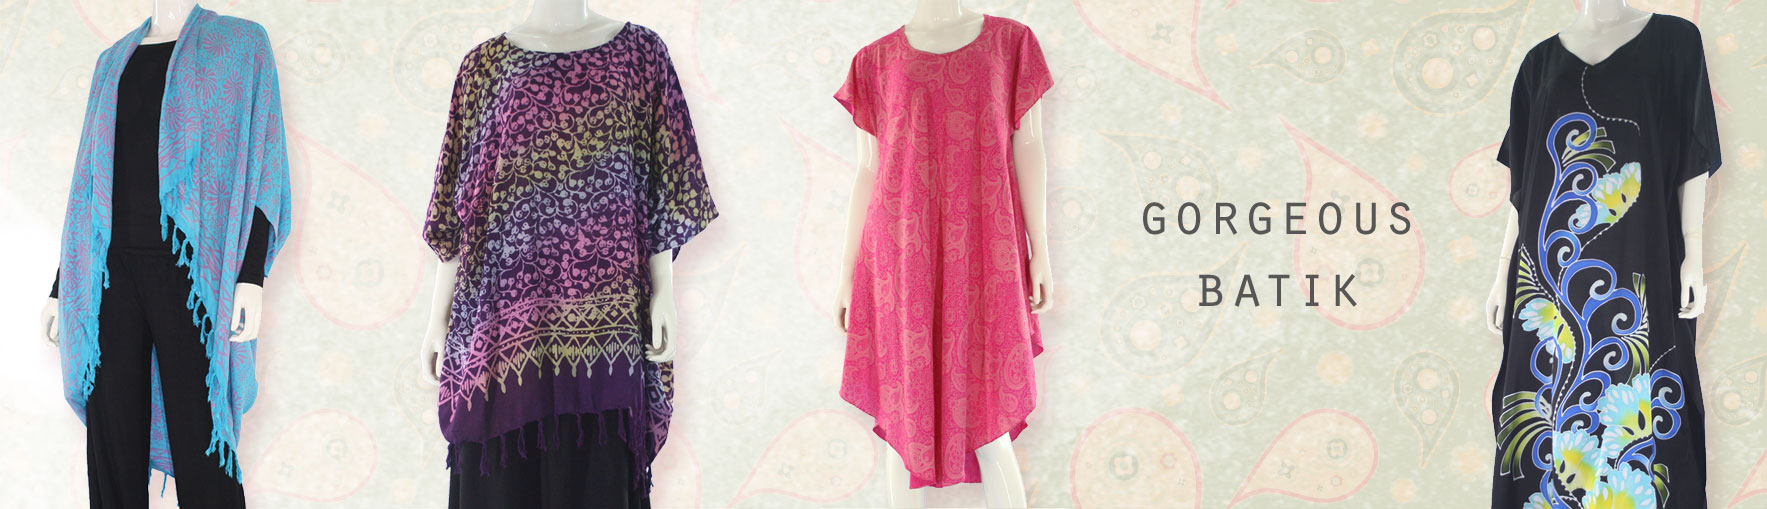 Hand Draw, Block Printed, Tops, Dress, Kaftan, Bali Batik, Clothing